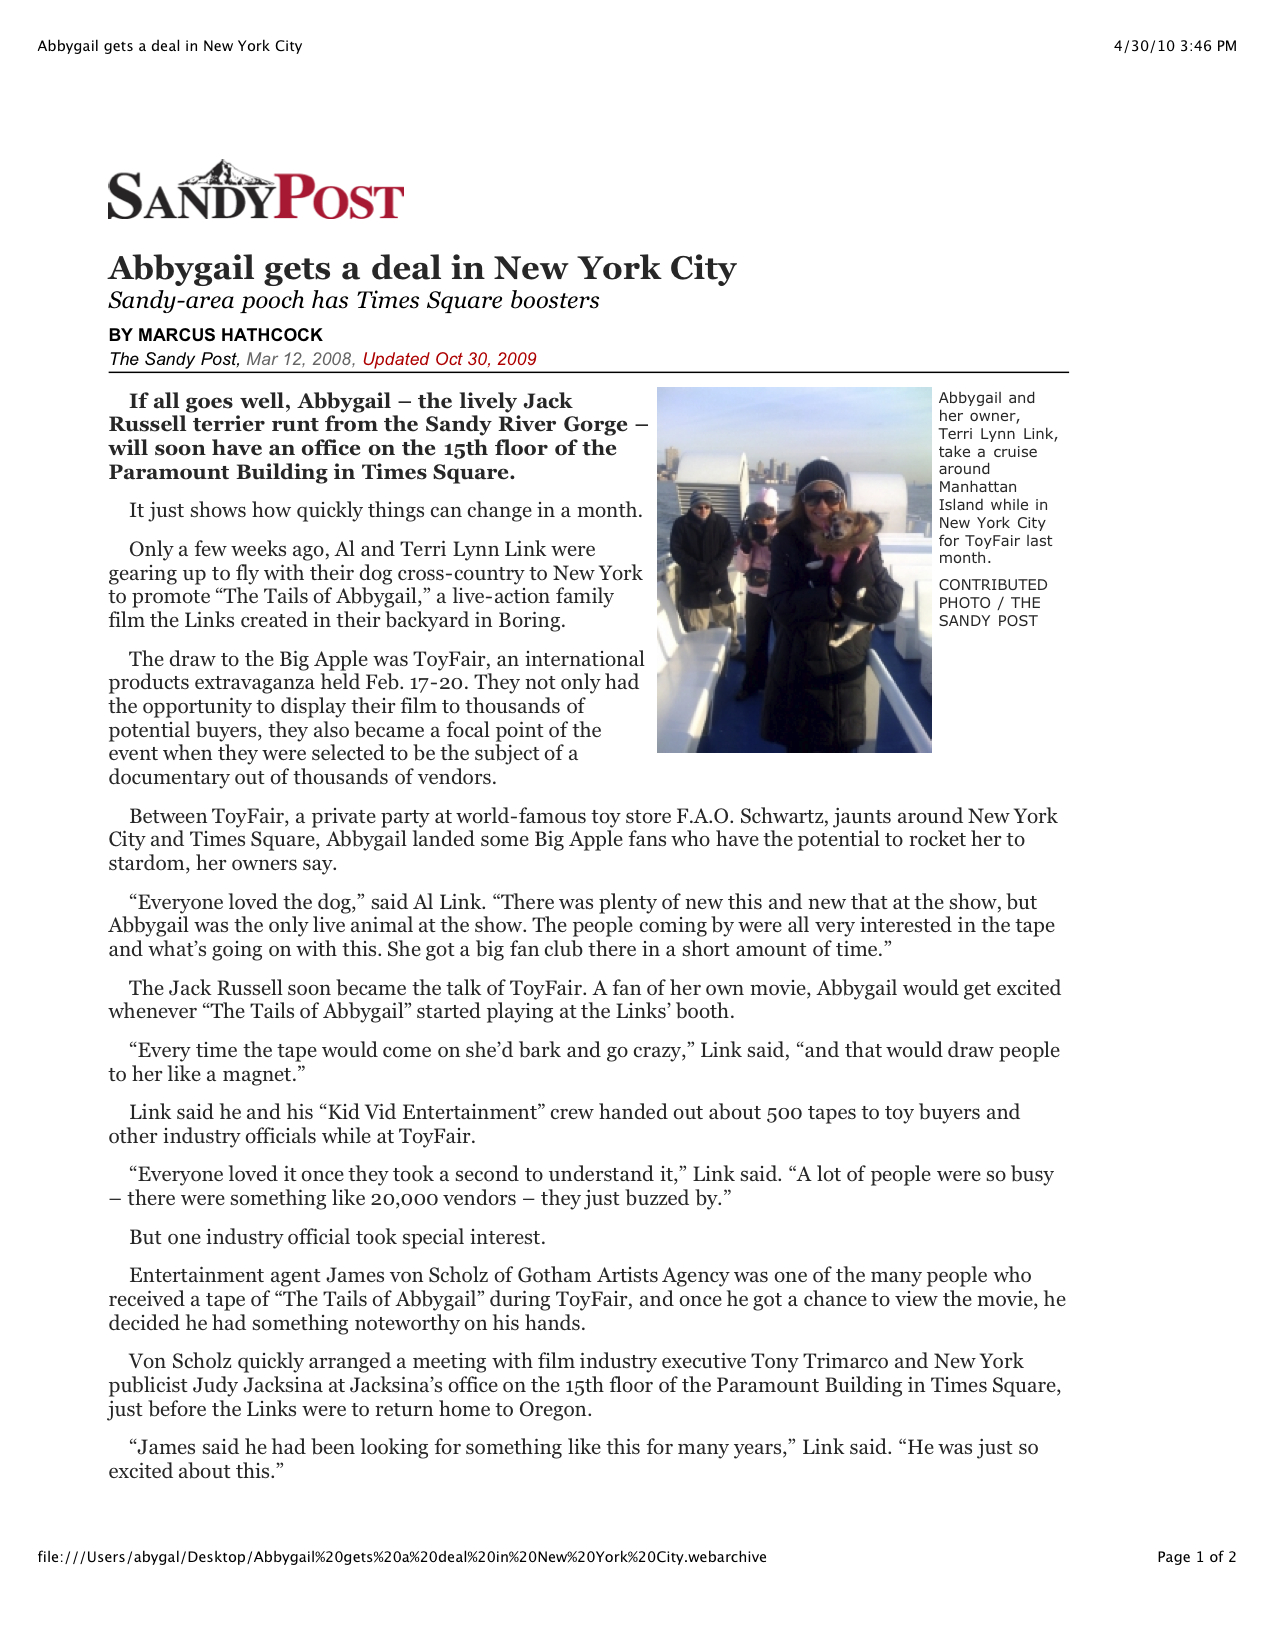 Abby gets a deal in NYC Sandy Post